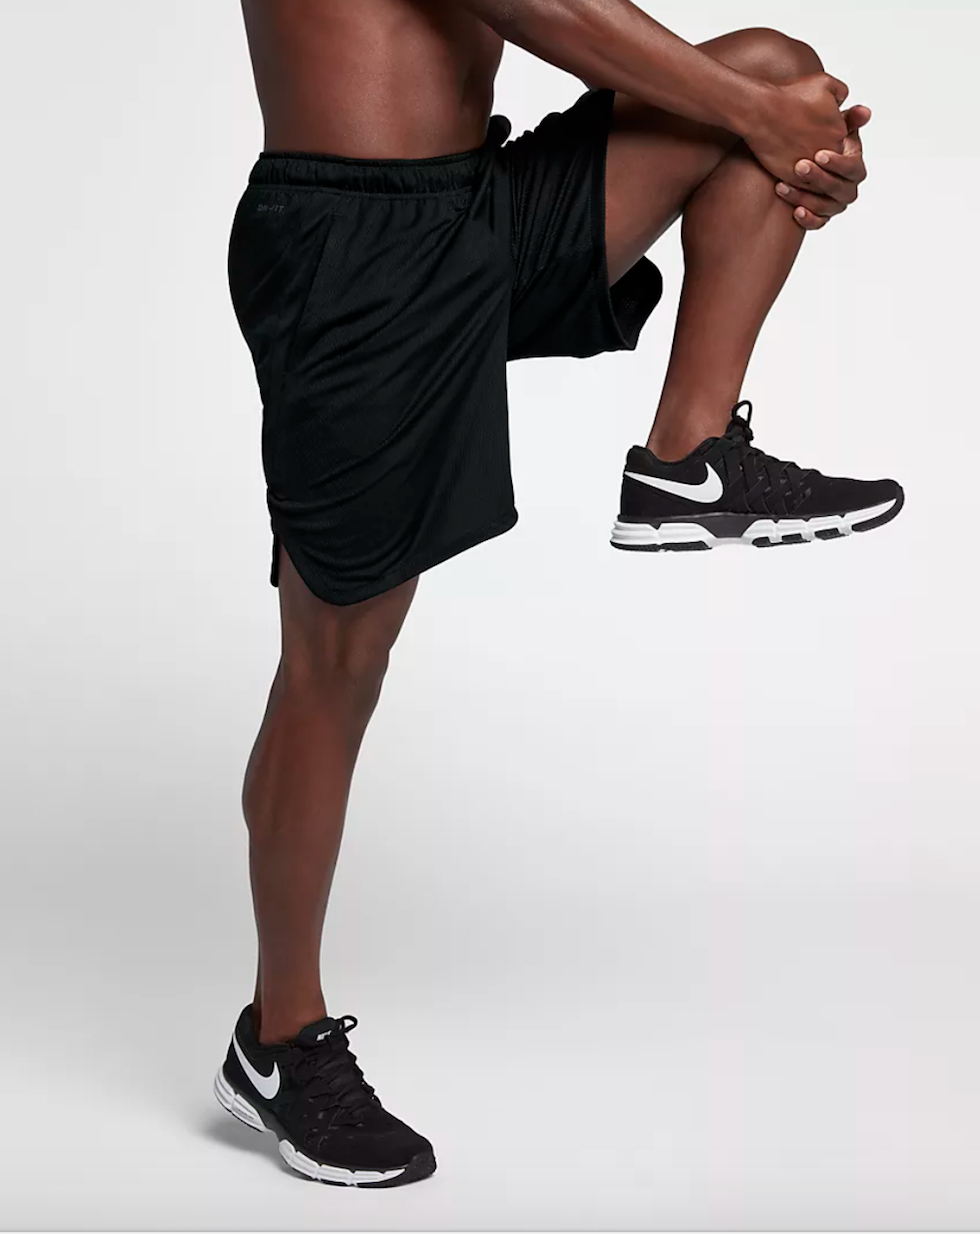 adafd926148554 This Nike Clearance Sale Means 20% Off Shoes, Clothes, and More